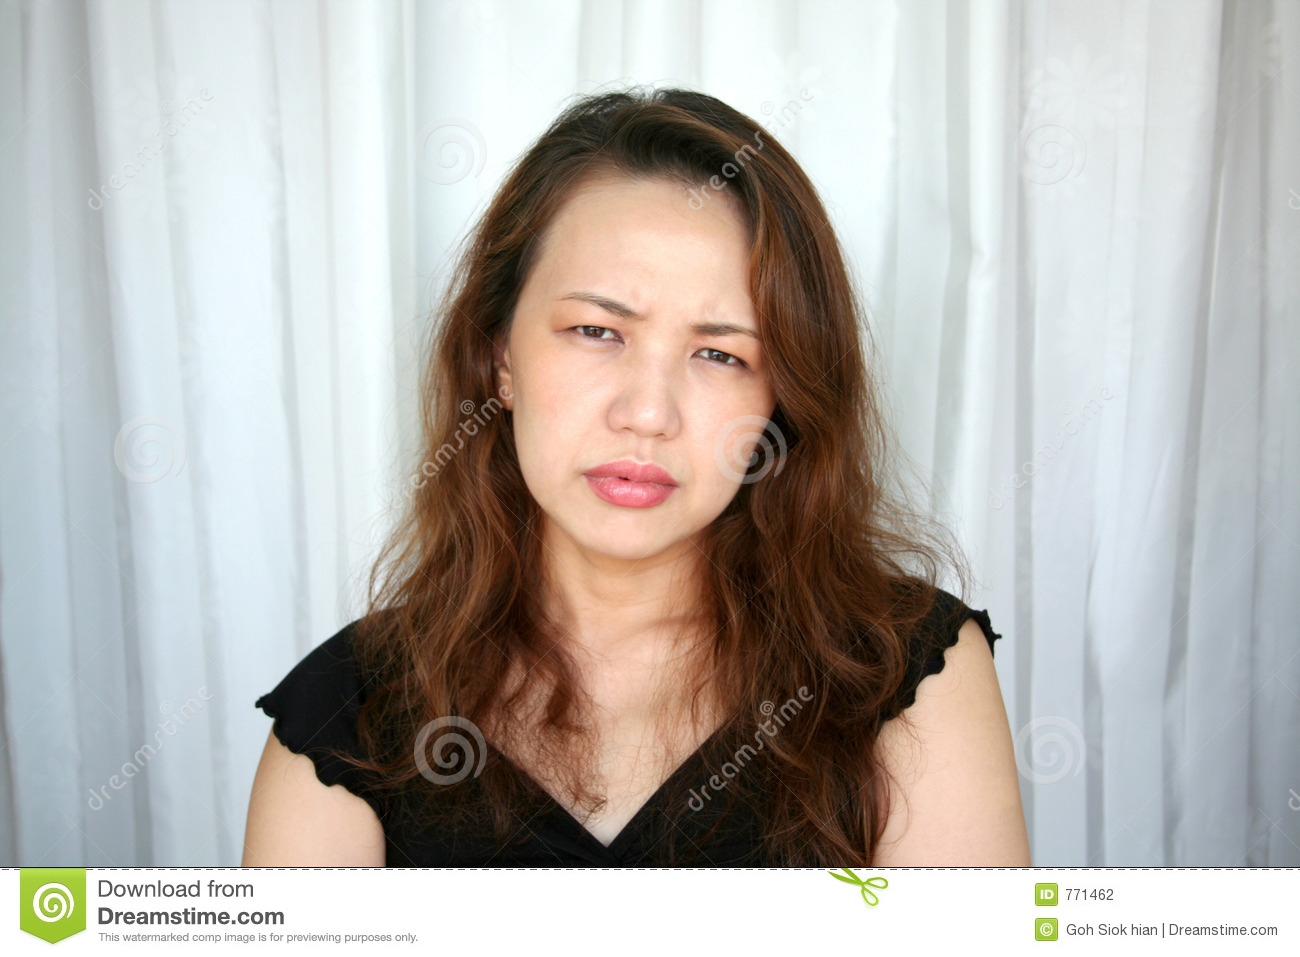 Woman frowning